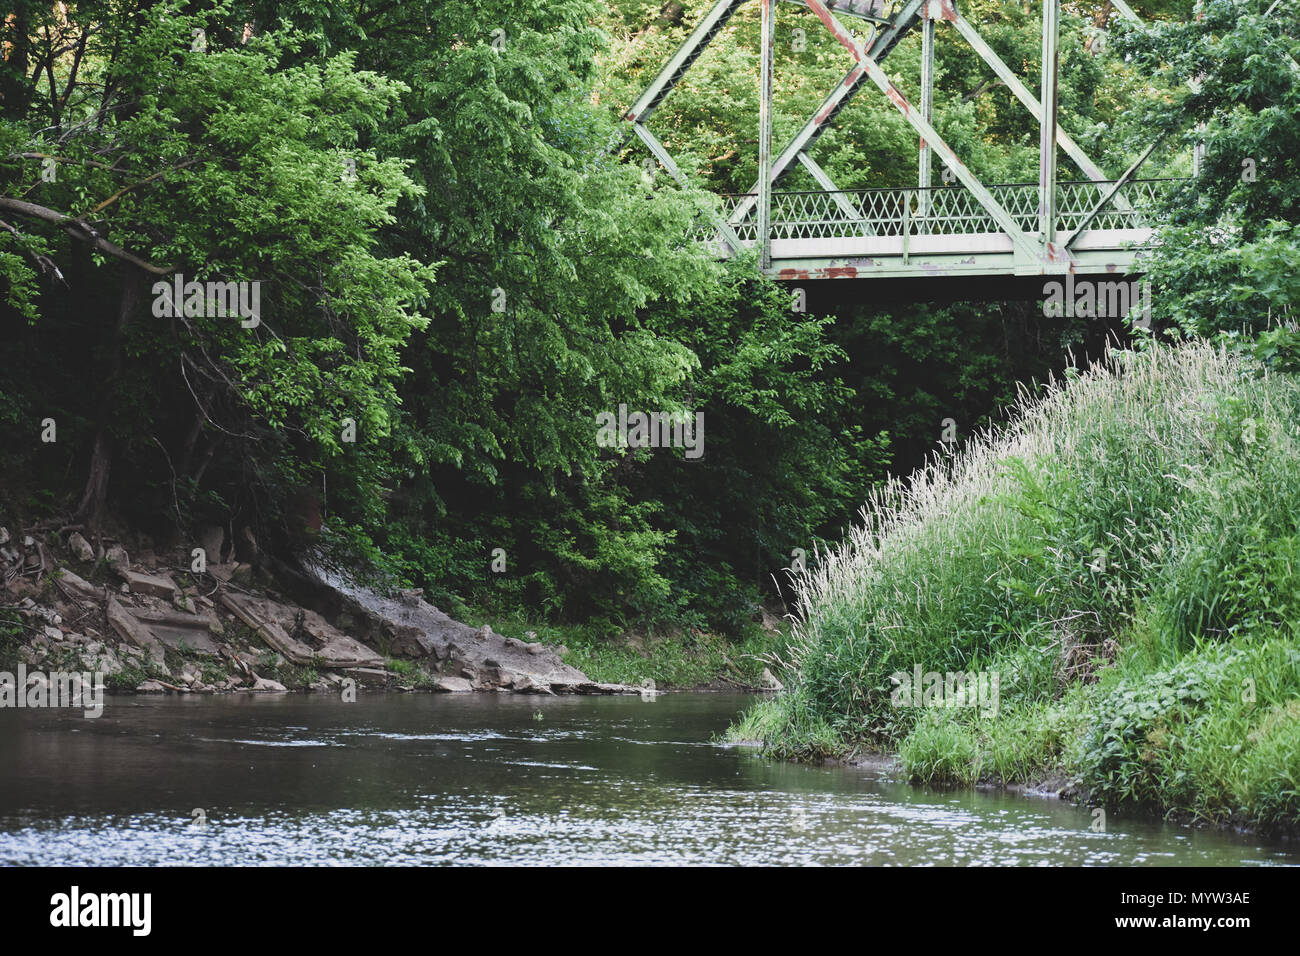 A beautiful shot of the Smokey Hill River, flowing calmly and steady under a bridge - Stock Image